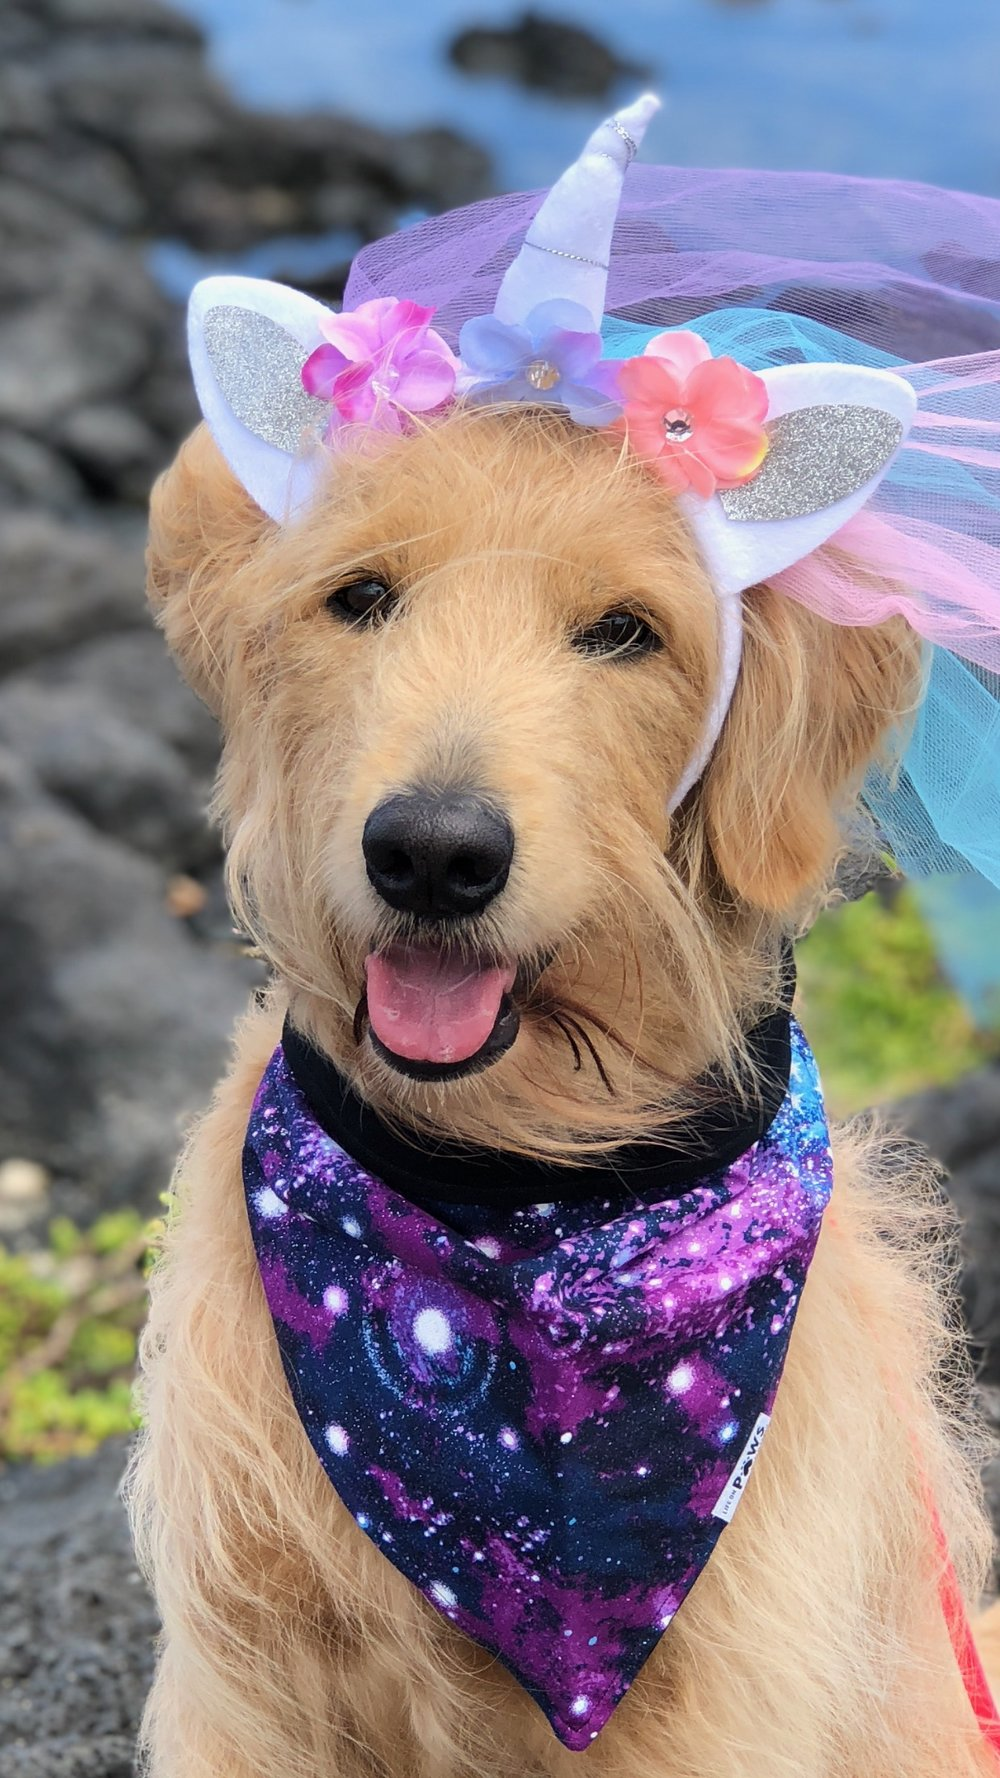 KAIA:  3yr old Golden Doodle. I'm from Honolulu and I enjoys hiking, chasing waterfalls & lizards, and sharing smiles and aloha where ever I goes :)